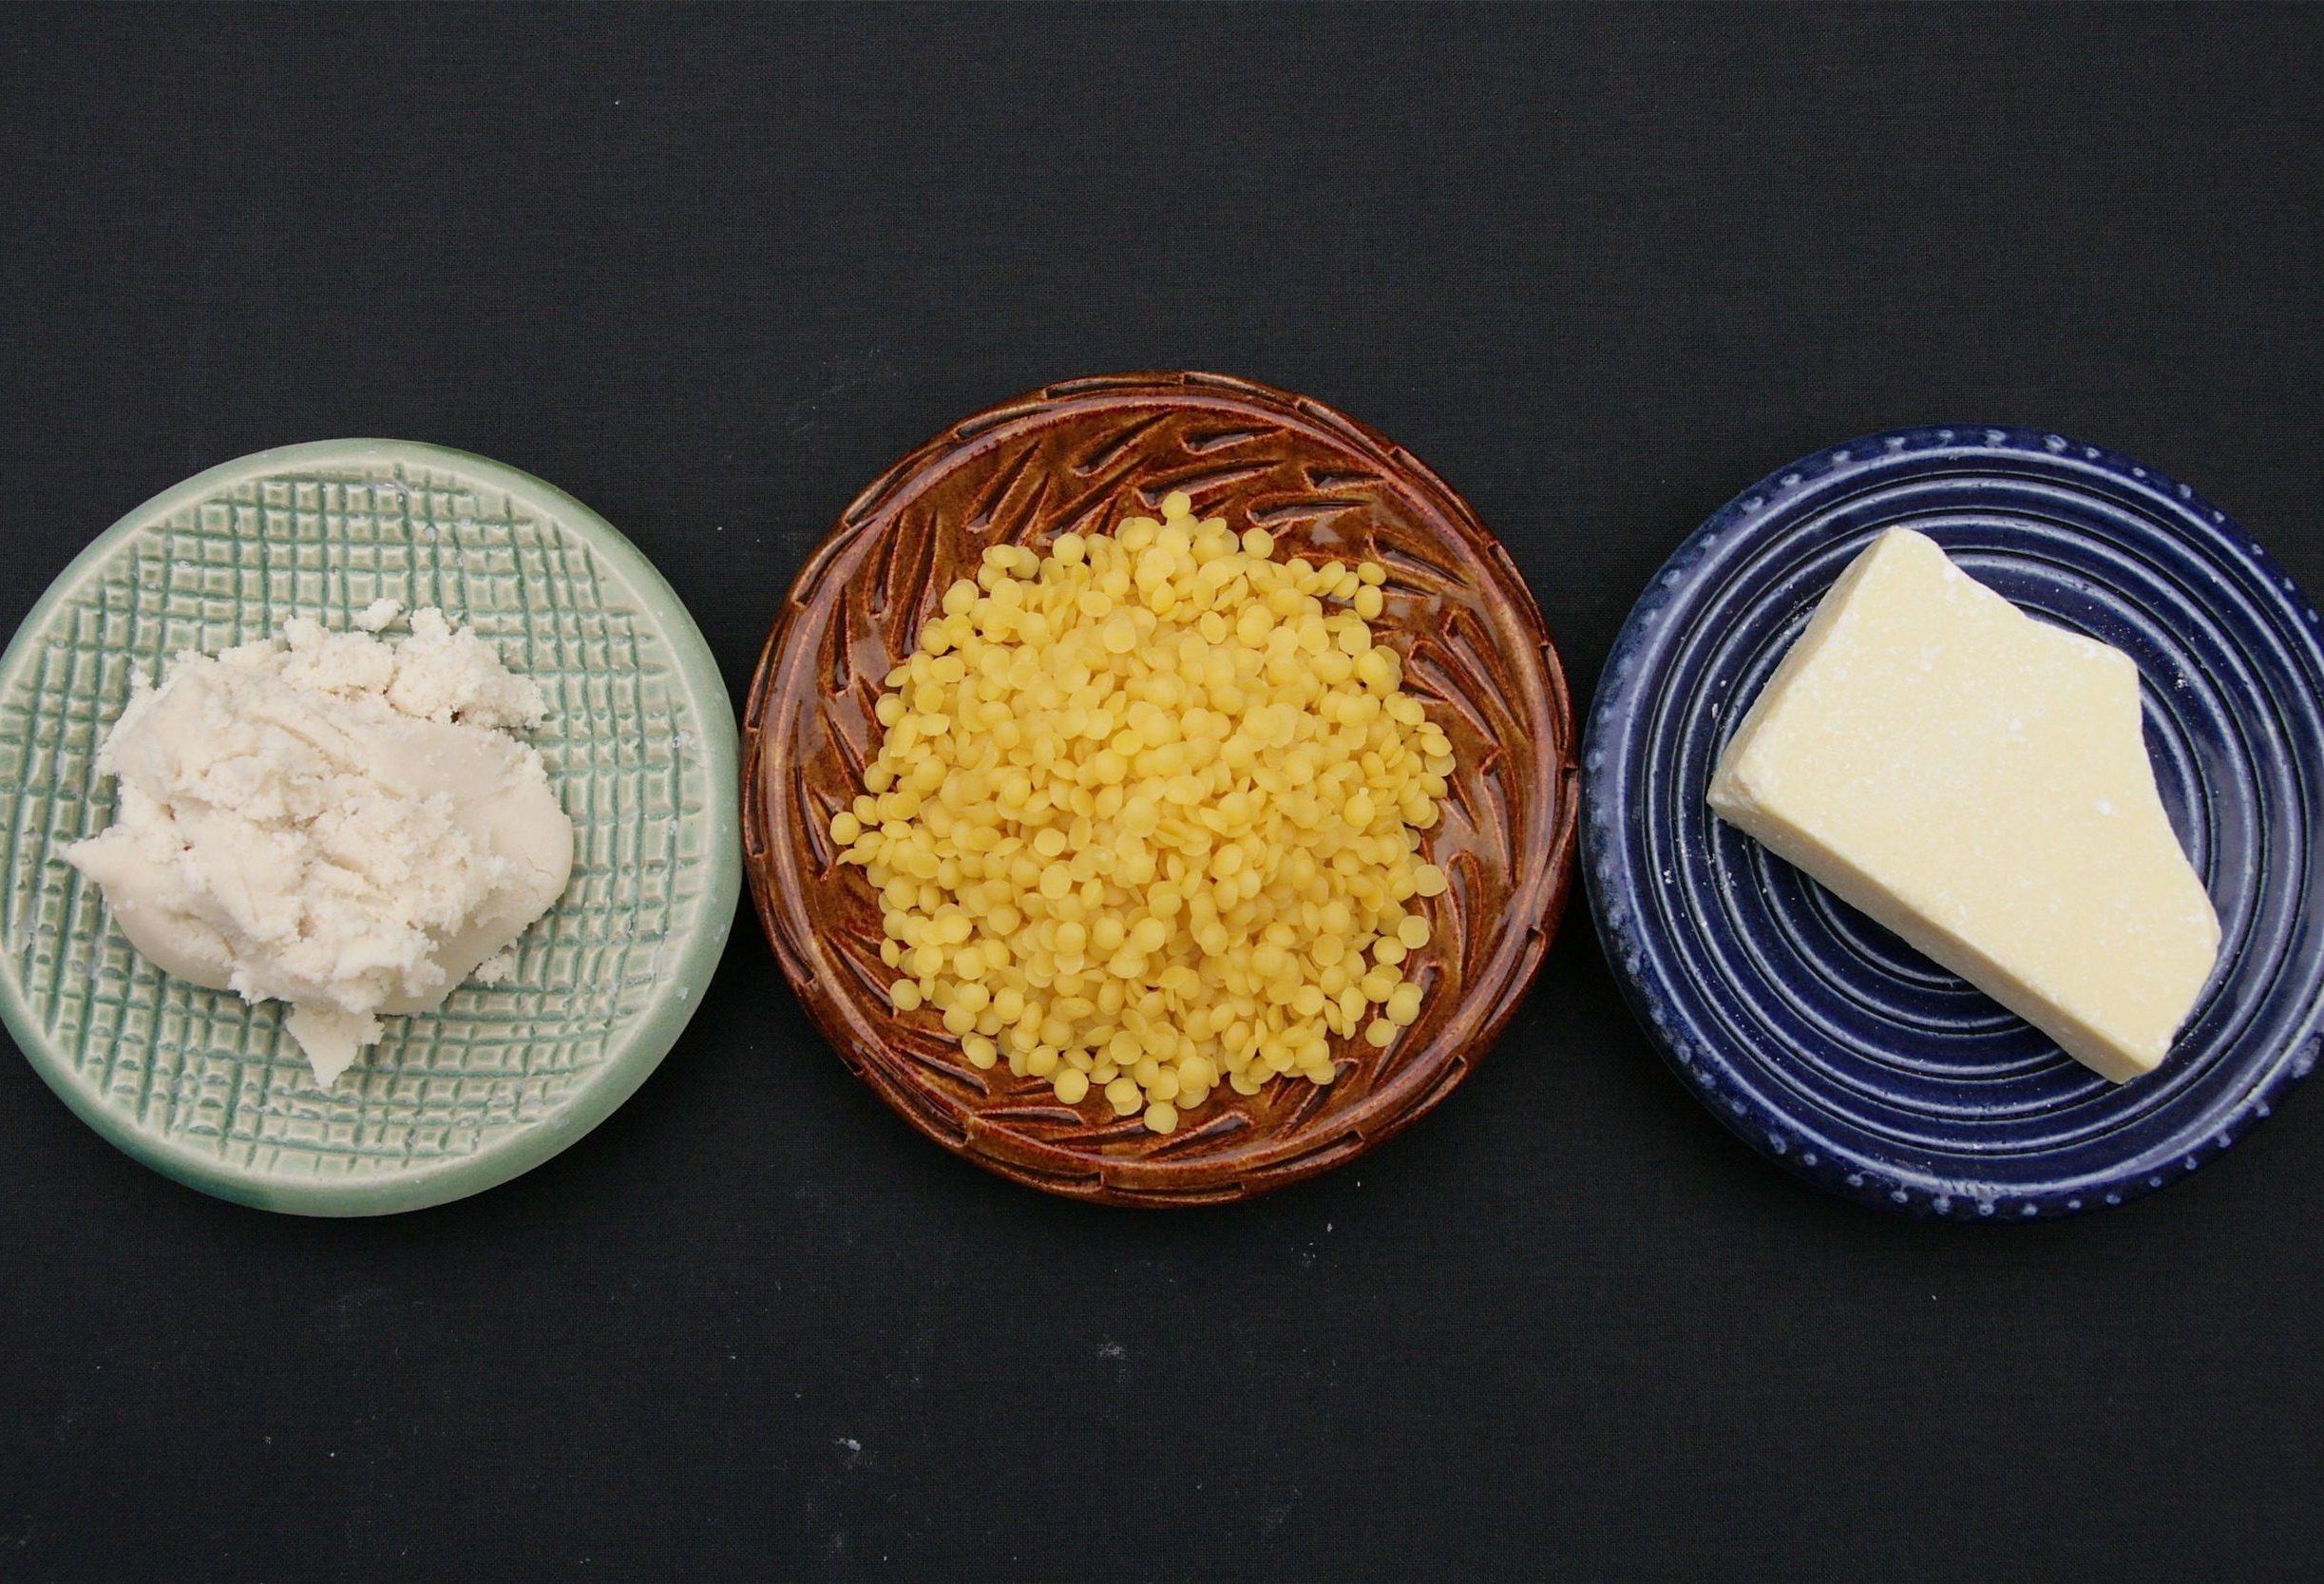 From Left: Shea Butter, Beeswax, Raw Cacao Butter. These, in addition to coconut oil and a few other common ingredients, form the base for all of the products you'll make through MVL.